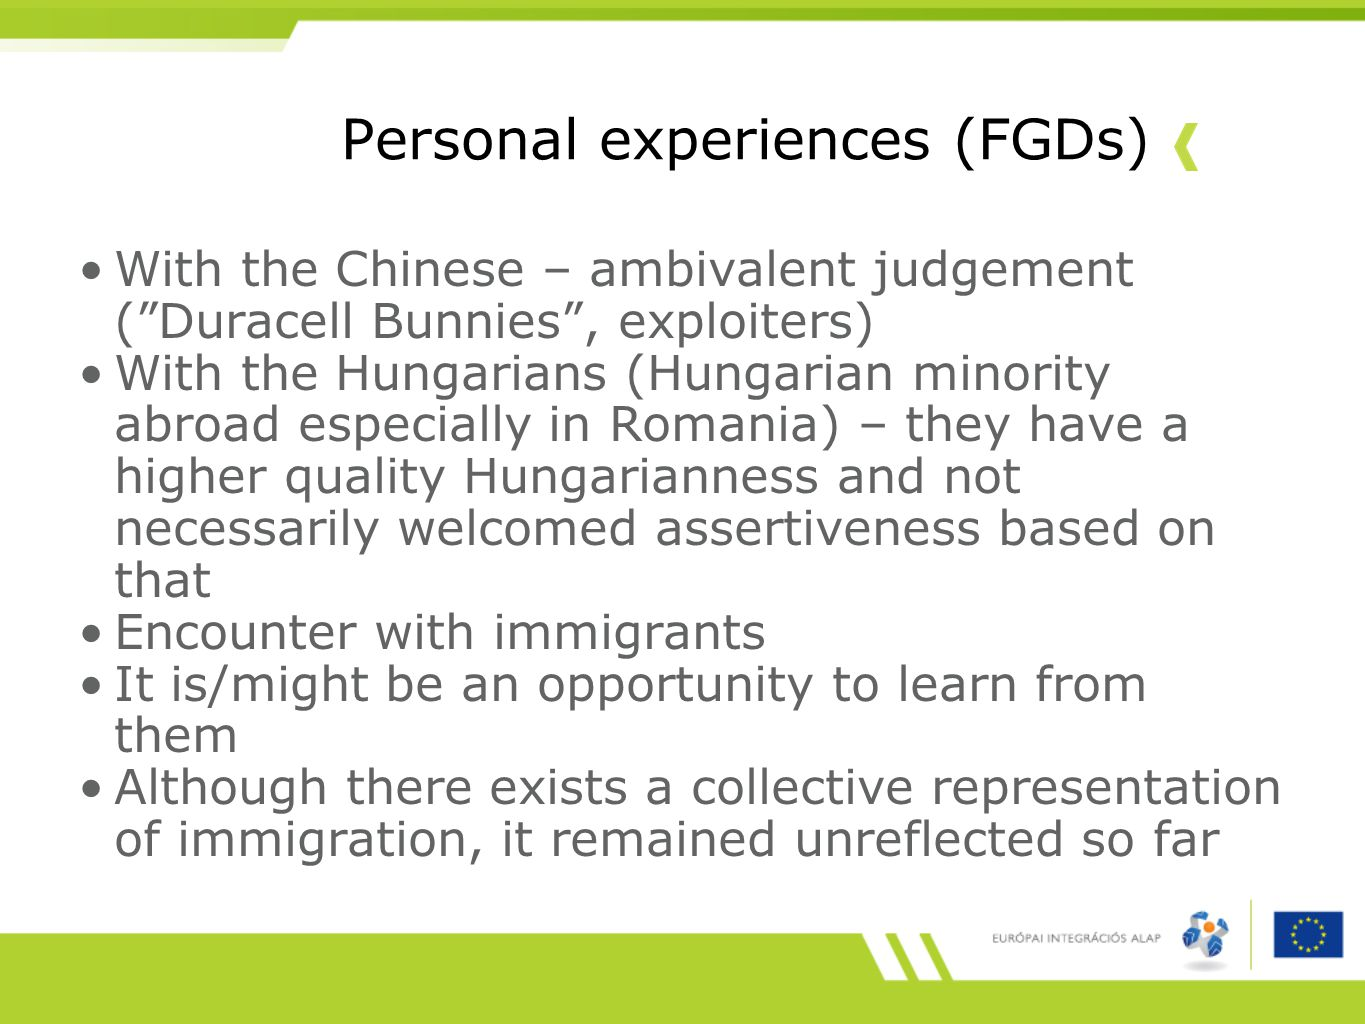 Personal experiences (FGDs) With the Chinese – ambivalent judgement ( Duracell Bunnies , exploiters) With the Hungarians (Hungarian minority abroad especially in Romania) – they have a higher quality Hungarianness and not necessarily welcomed assertiveness based on that Encounter with immigrants It is/might be an opportunity to learn from them Although there exists a collective representation of immigration, it remained unreflected so far